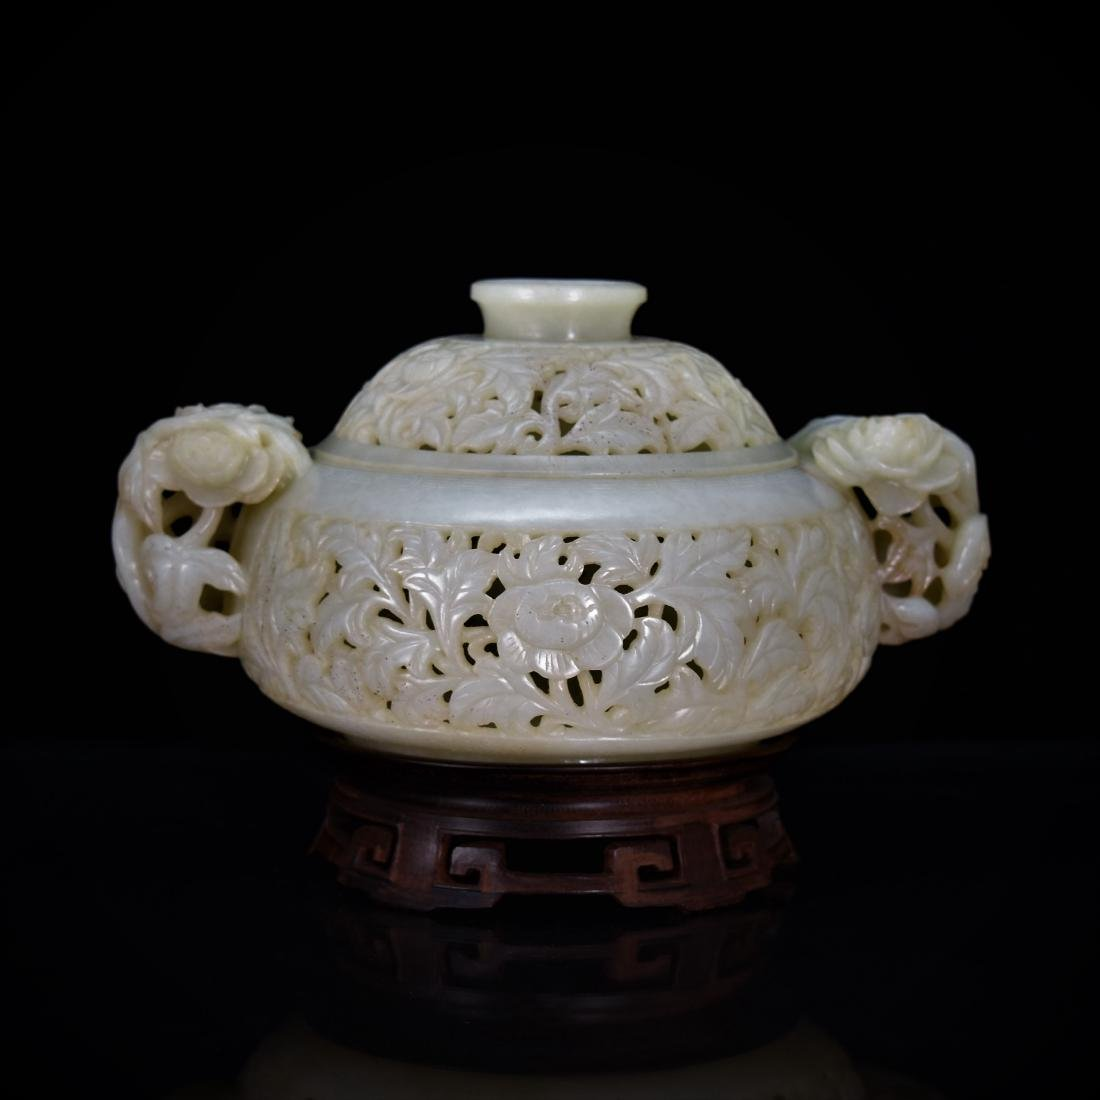 OPENWORK CARVING JADE CENSER ON STAND